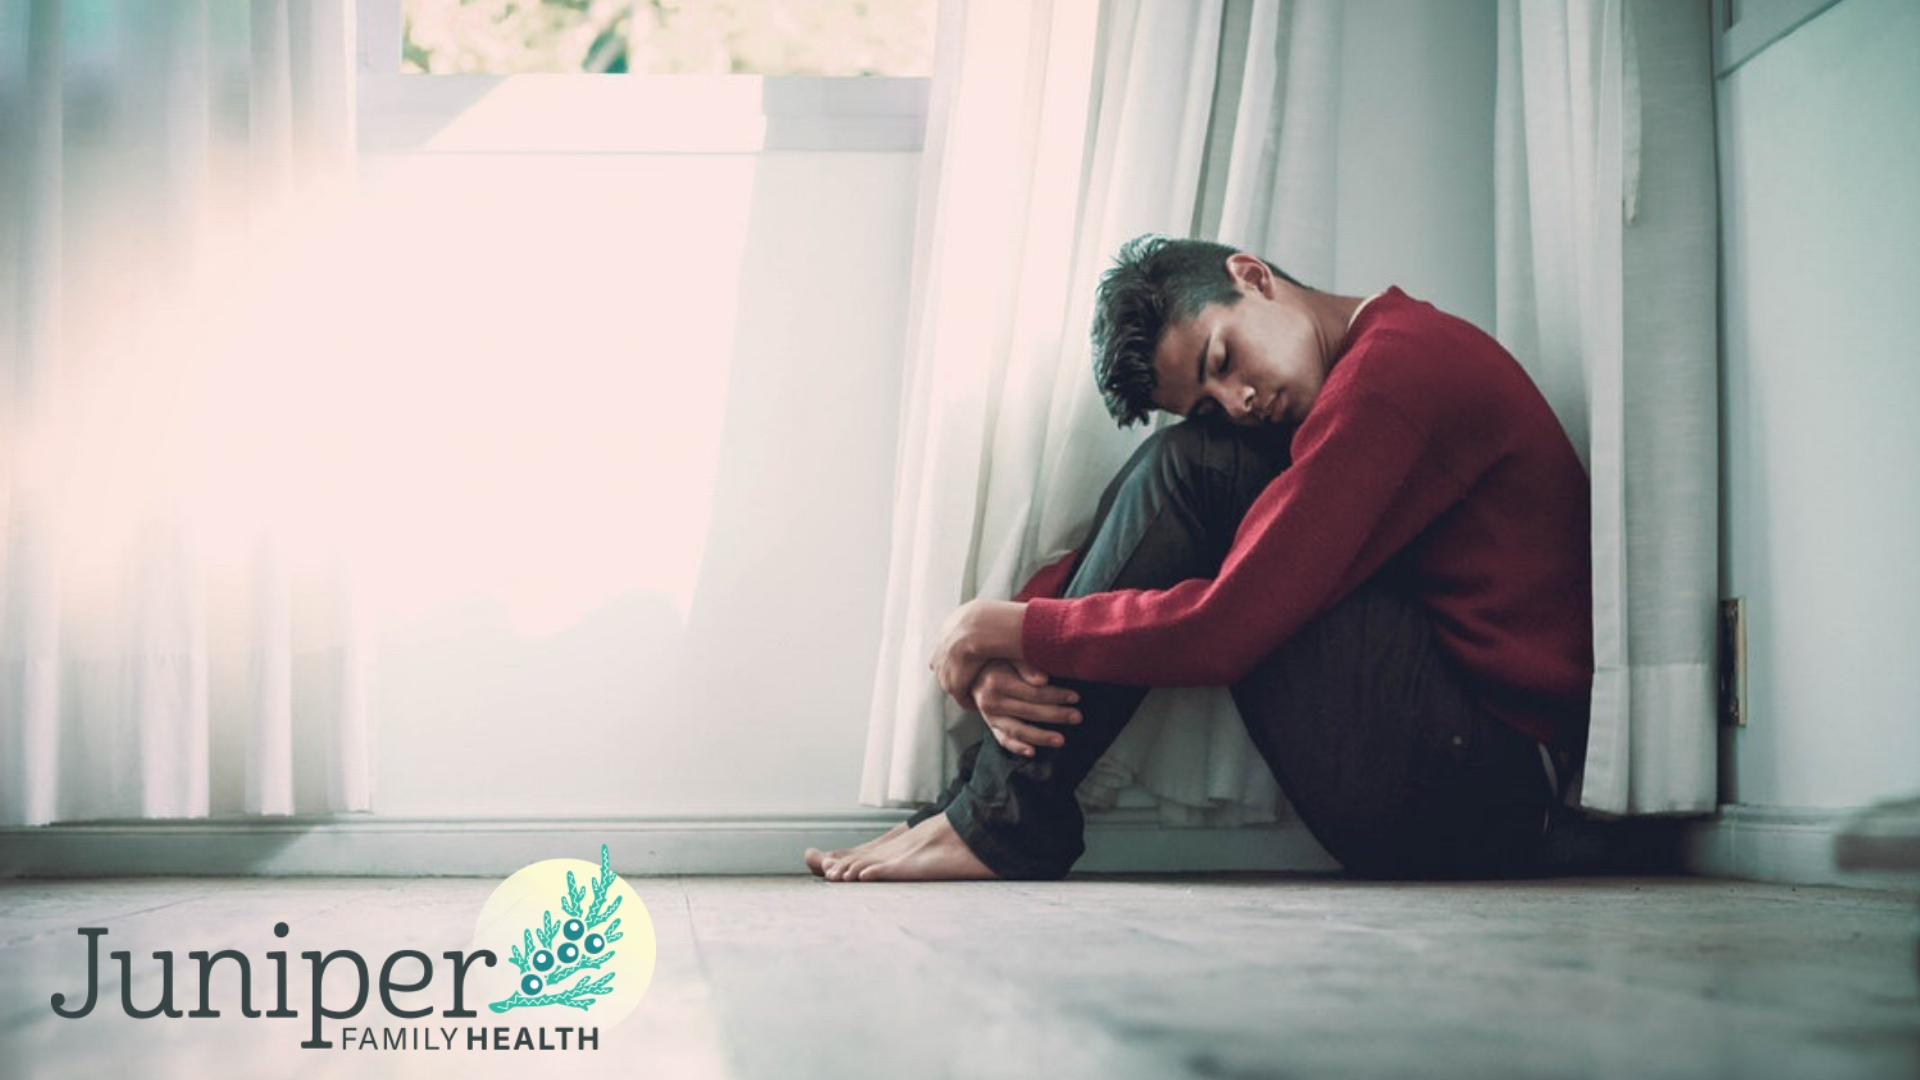 naturopath victoria, naturopathic doctor victoria bc, naturopathic medicine victoria bc, naturopathic clinic victoria bc, mental health, depression, anxiety, antidepressant medications